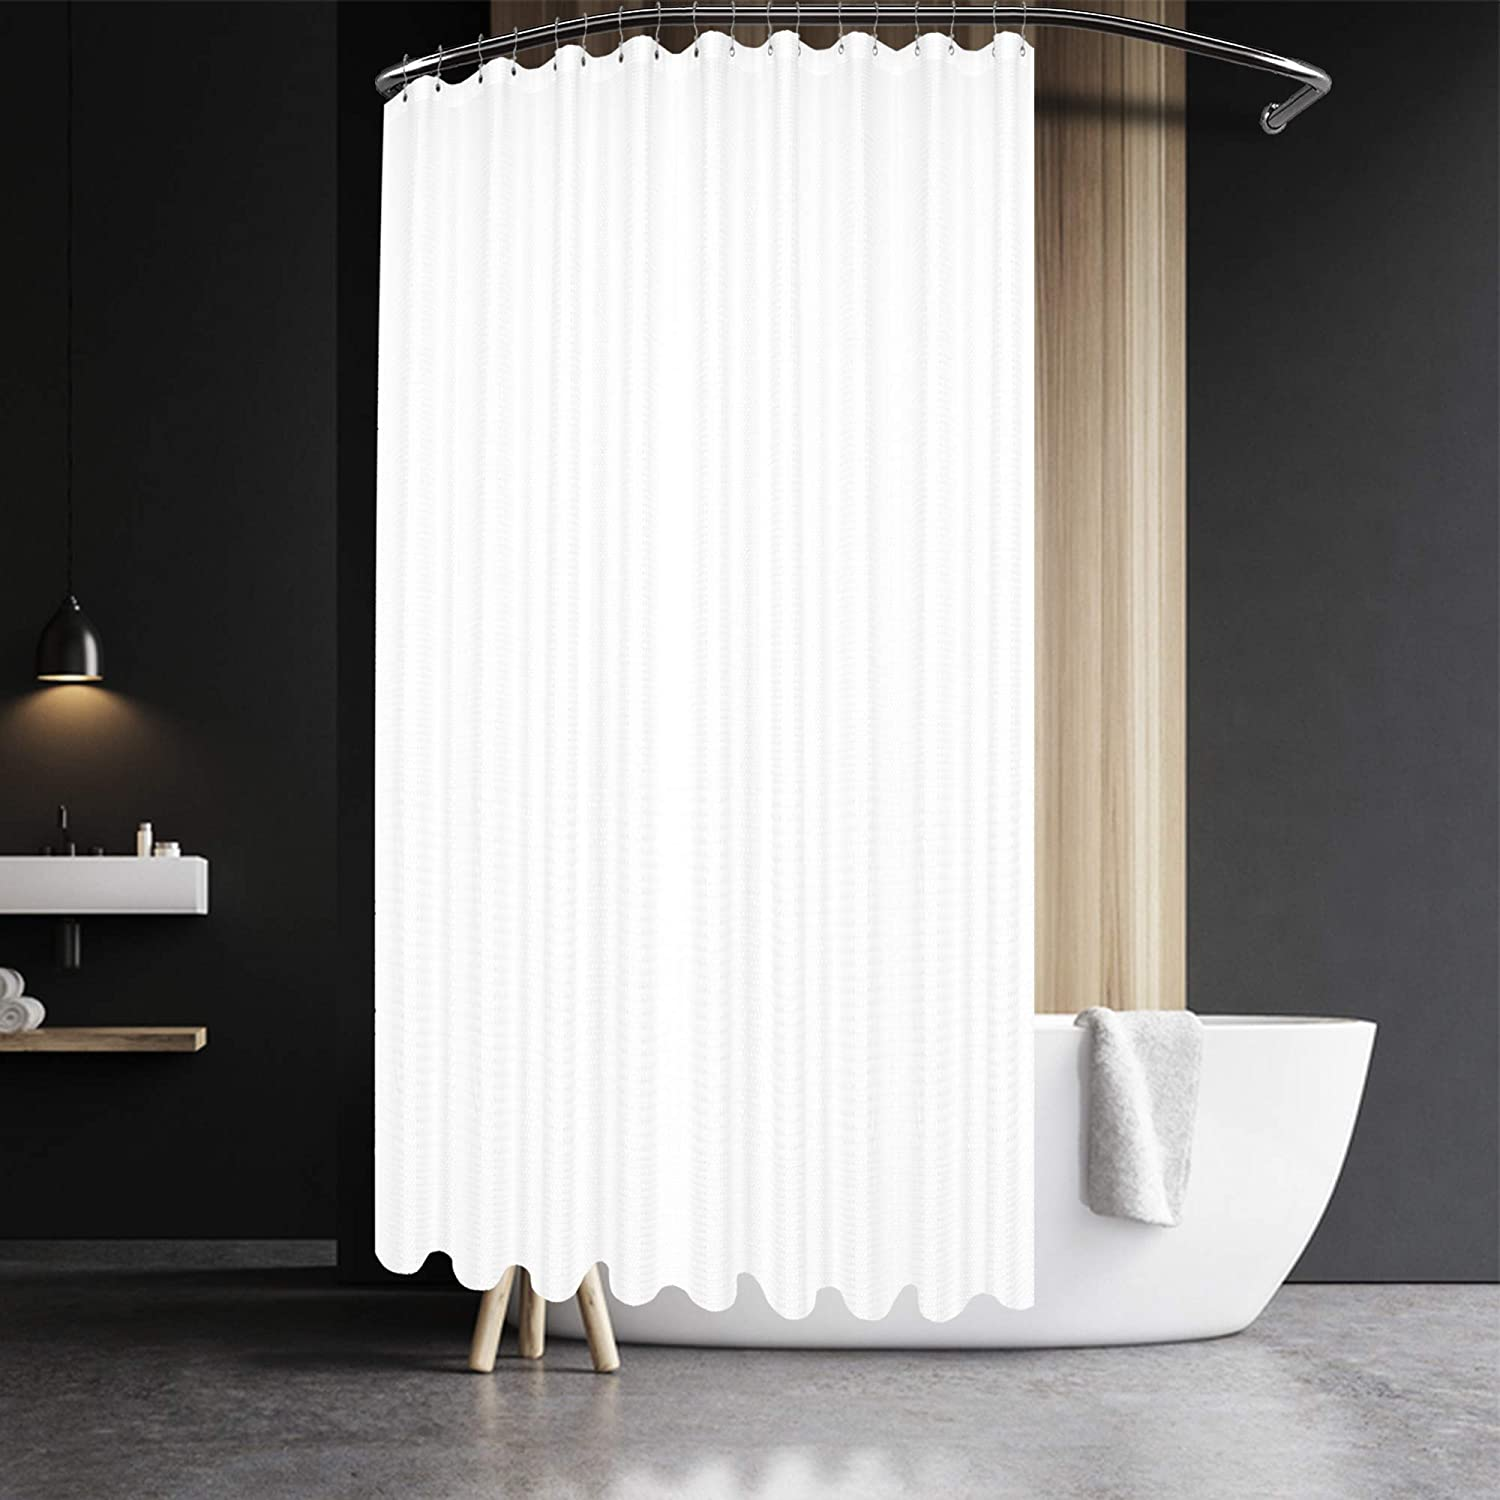 Fabric Shower Curtain Plain White Extra Wide Extra Long Standard With Hooks